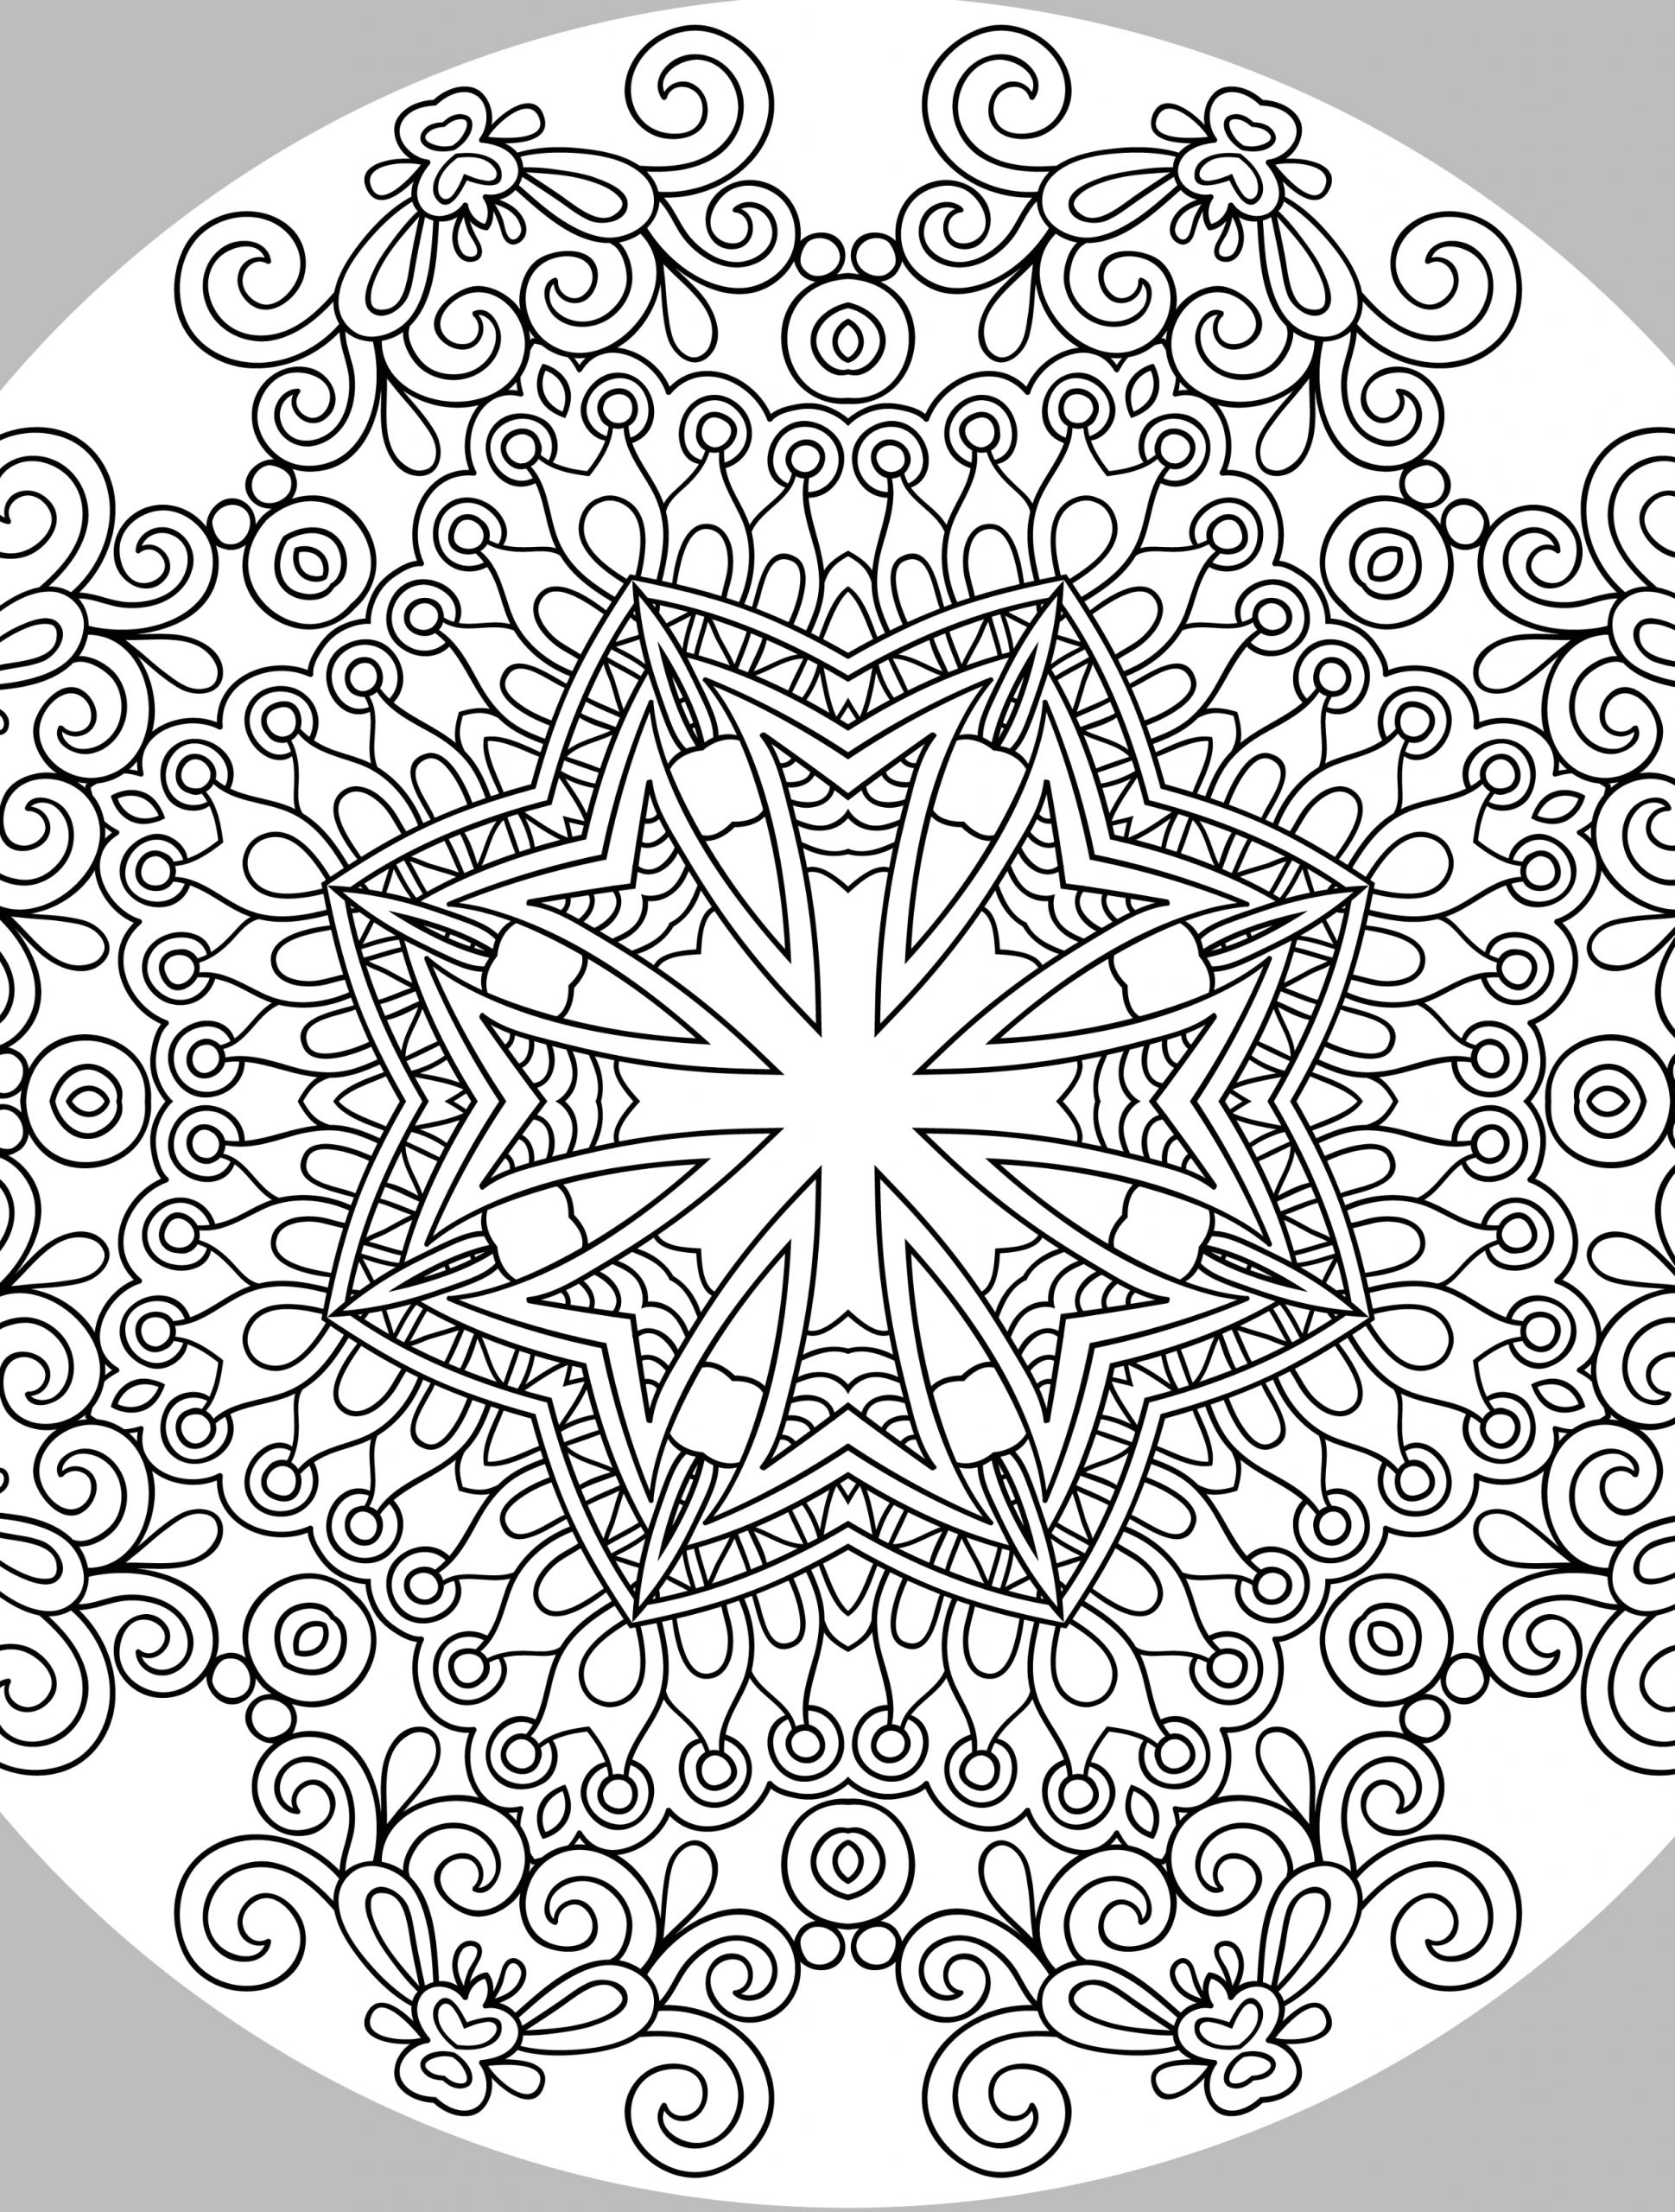 Free Online Coloring Pages for Adults Christmas Printable Christmas Coloring Pages for Adults at